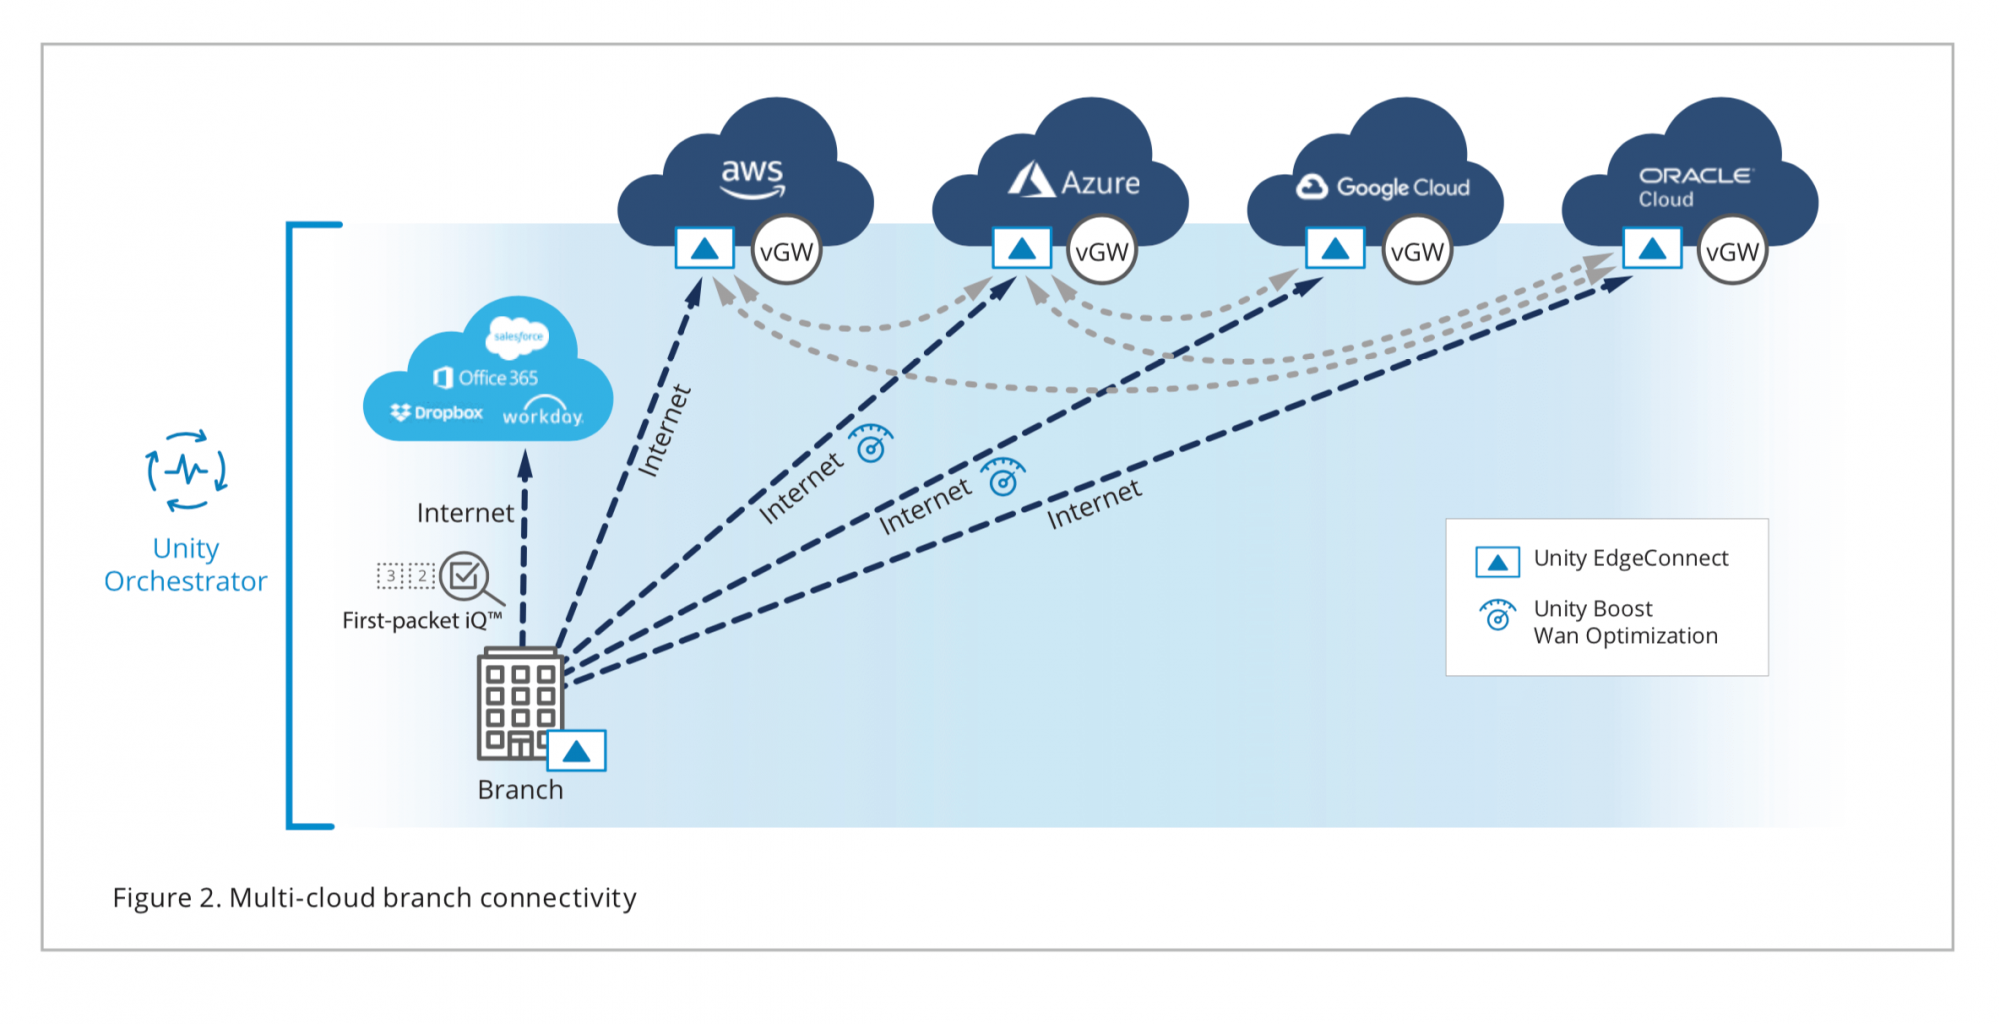 Figure 2. Multi-cloud branch connectivity